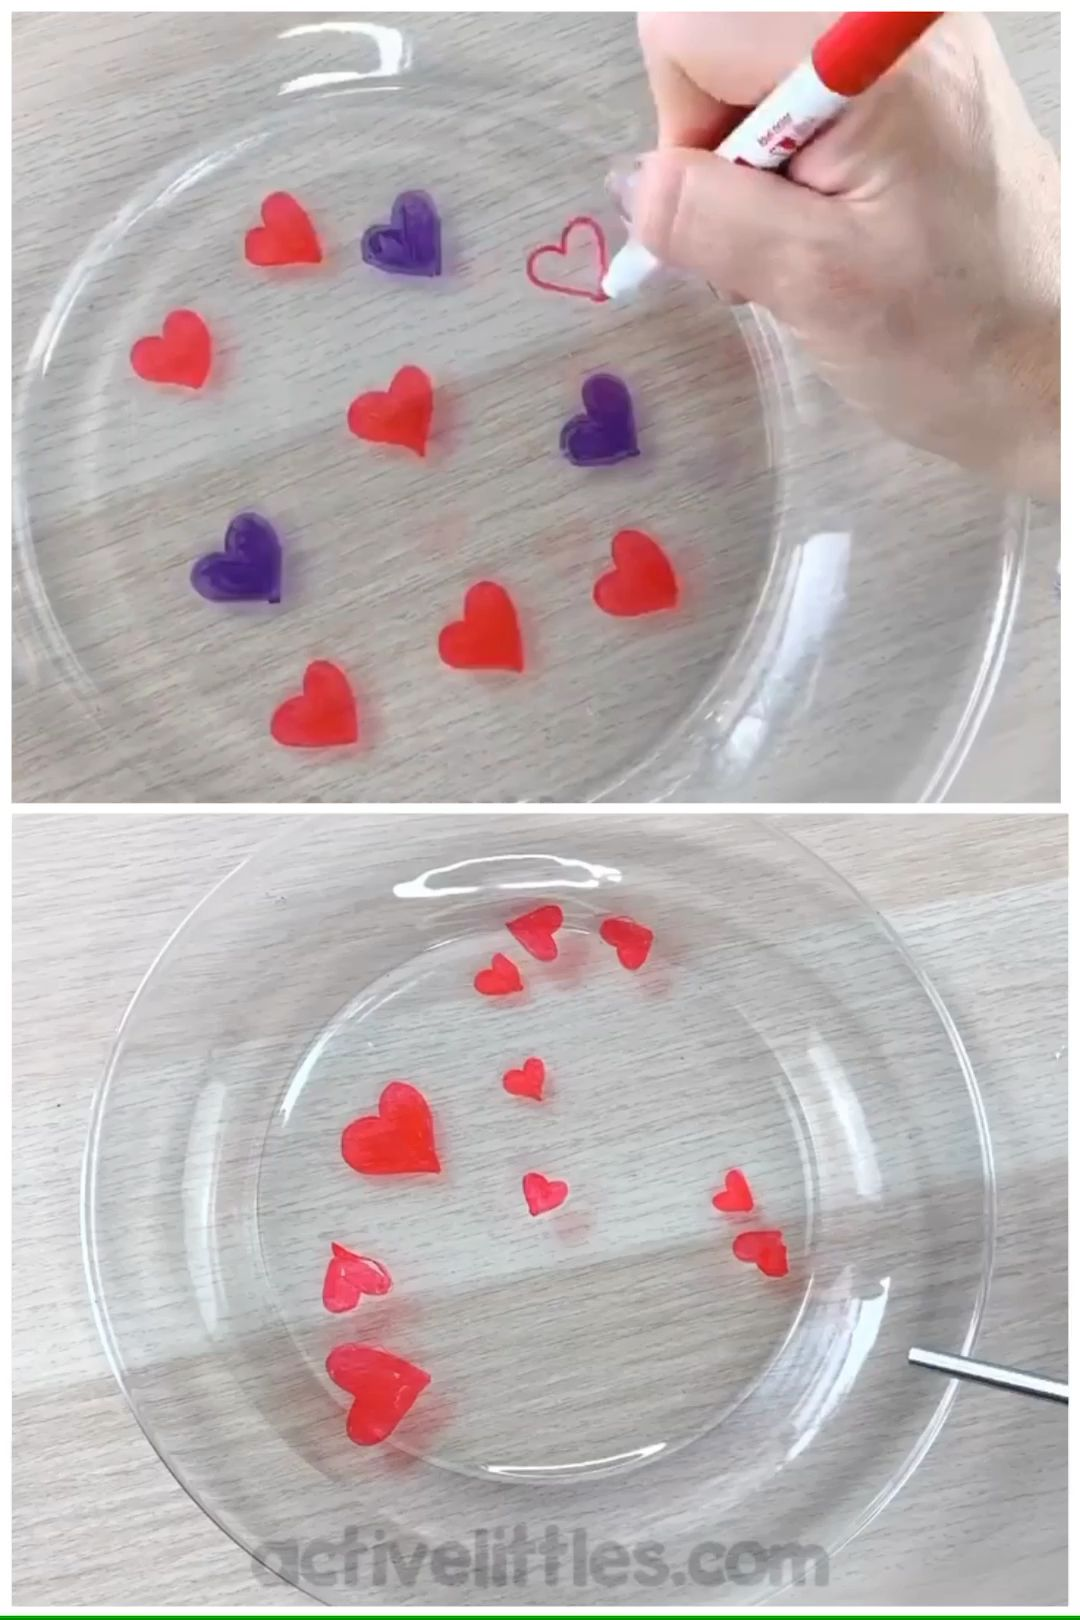 This easy 2 ingredient science experiment is so much fun! I set it out themed for Valentine's Day for my preschooler and kindergartener! I used a dry erase marker to create the hearts and water for them to magically move around! Super easy and so much fun for kids! Enjoy!